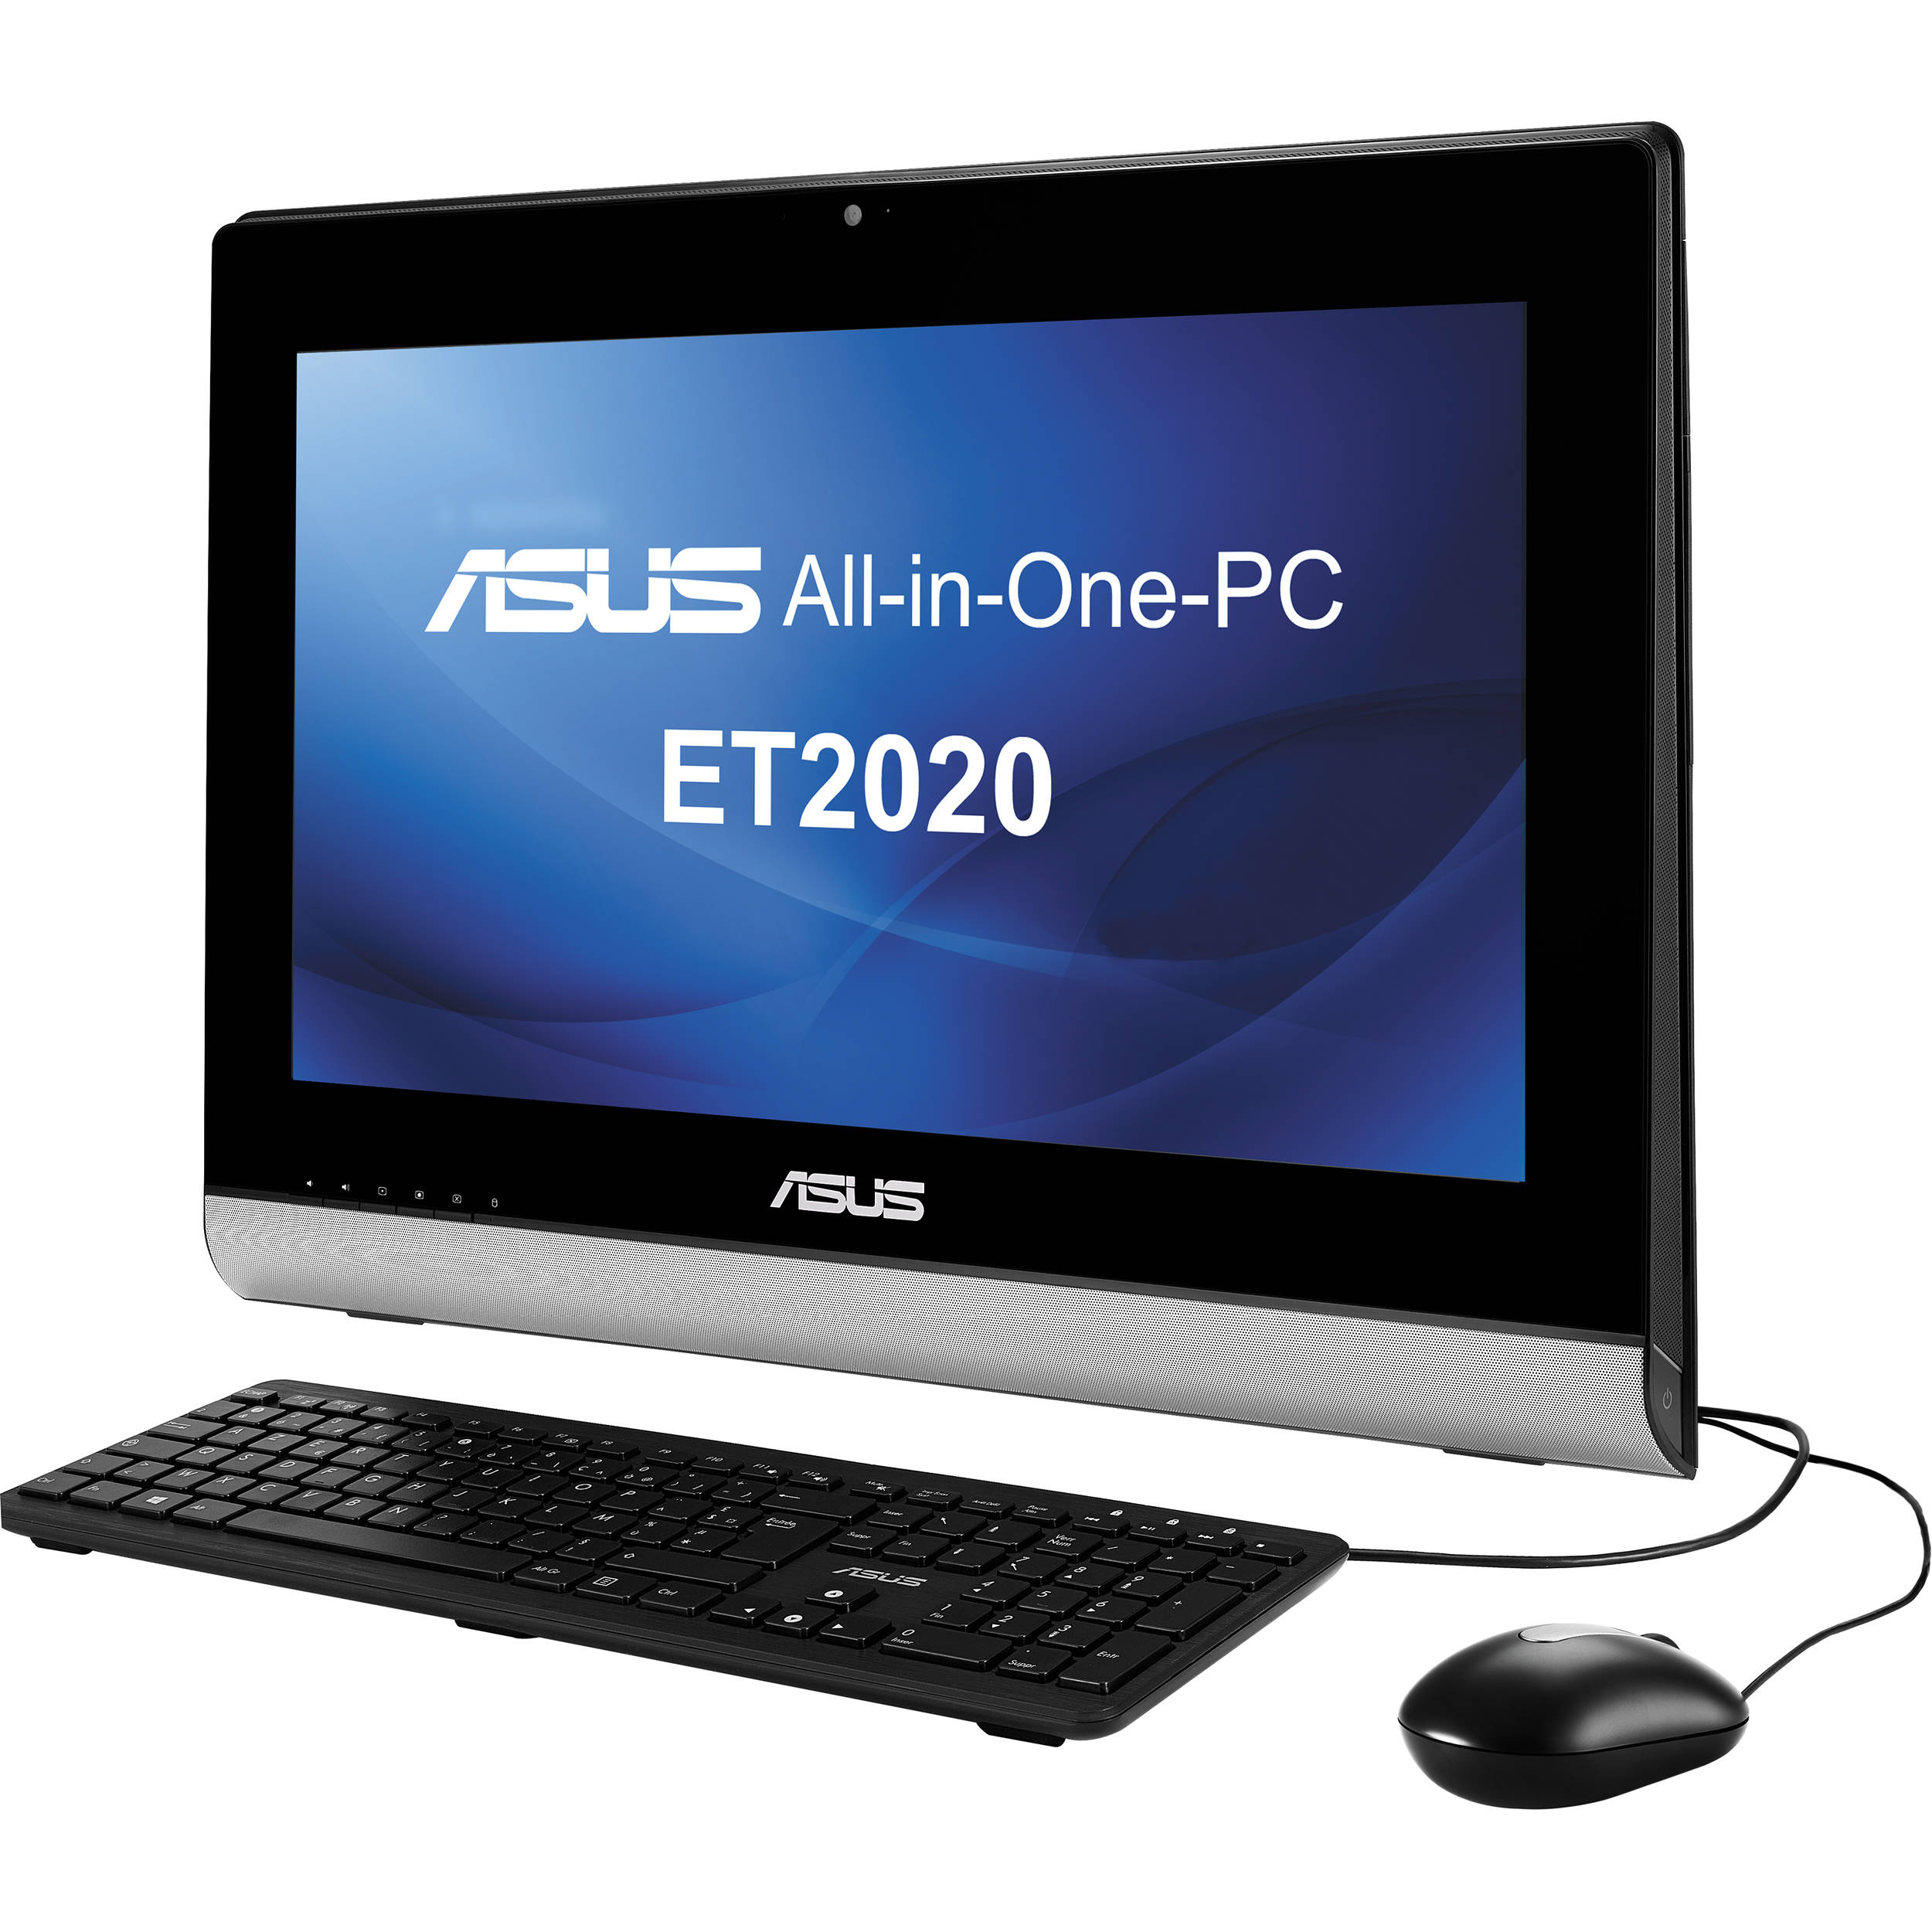 Cheap desktop computer - Asus Et2020iuki 01 19 5 All In One Desktop Computer Black